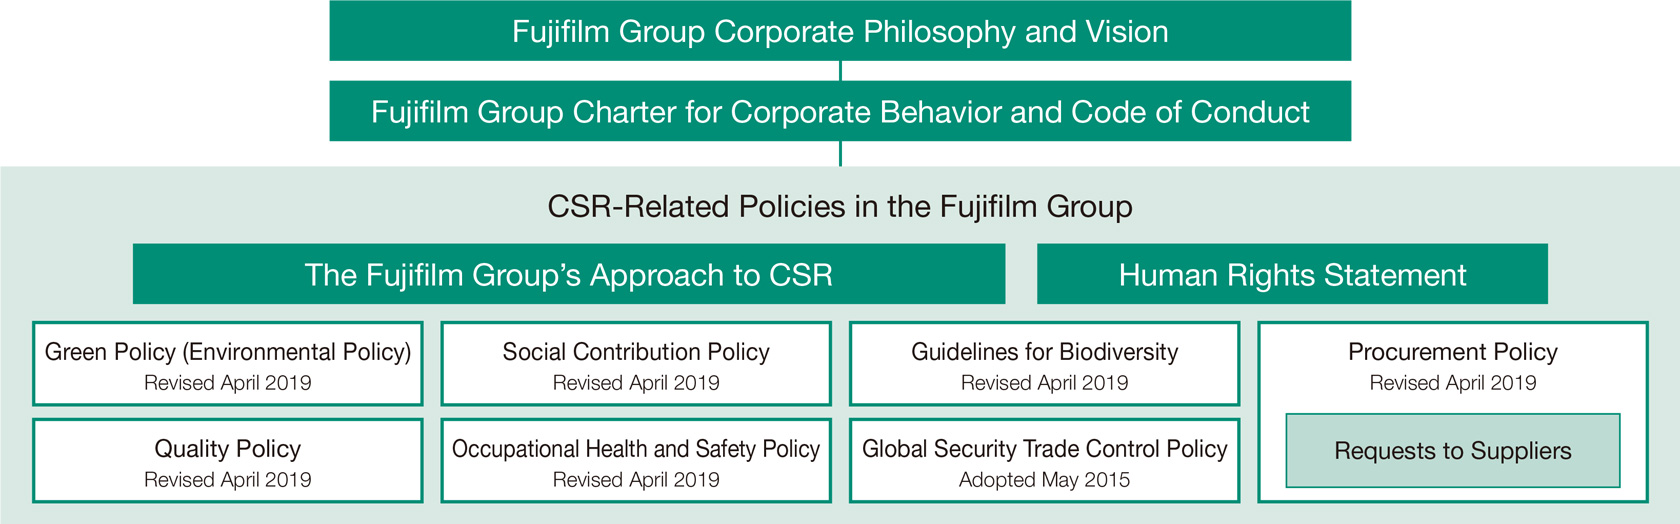 [figure]The Fujifilm Group's Approach to CSR